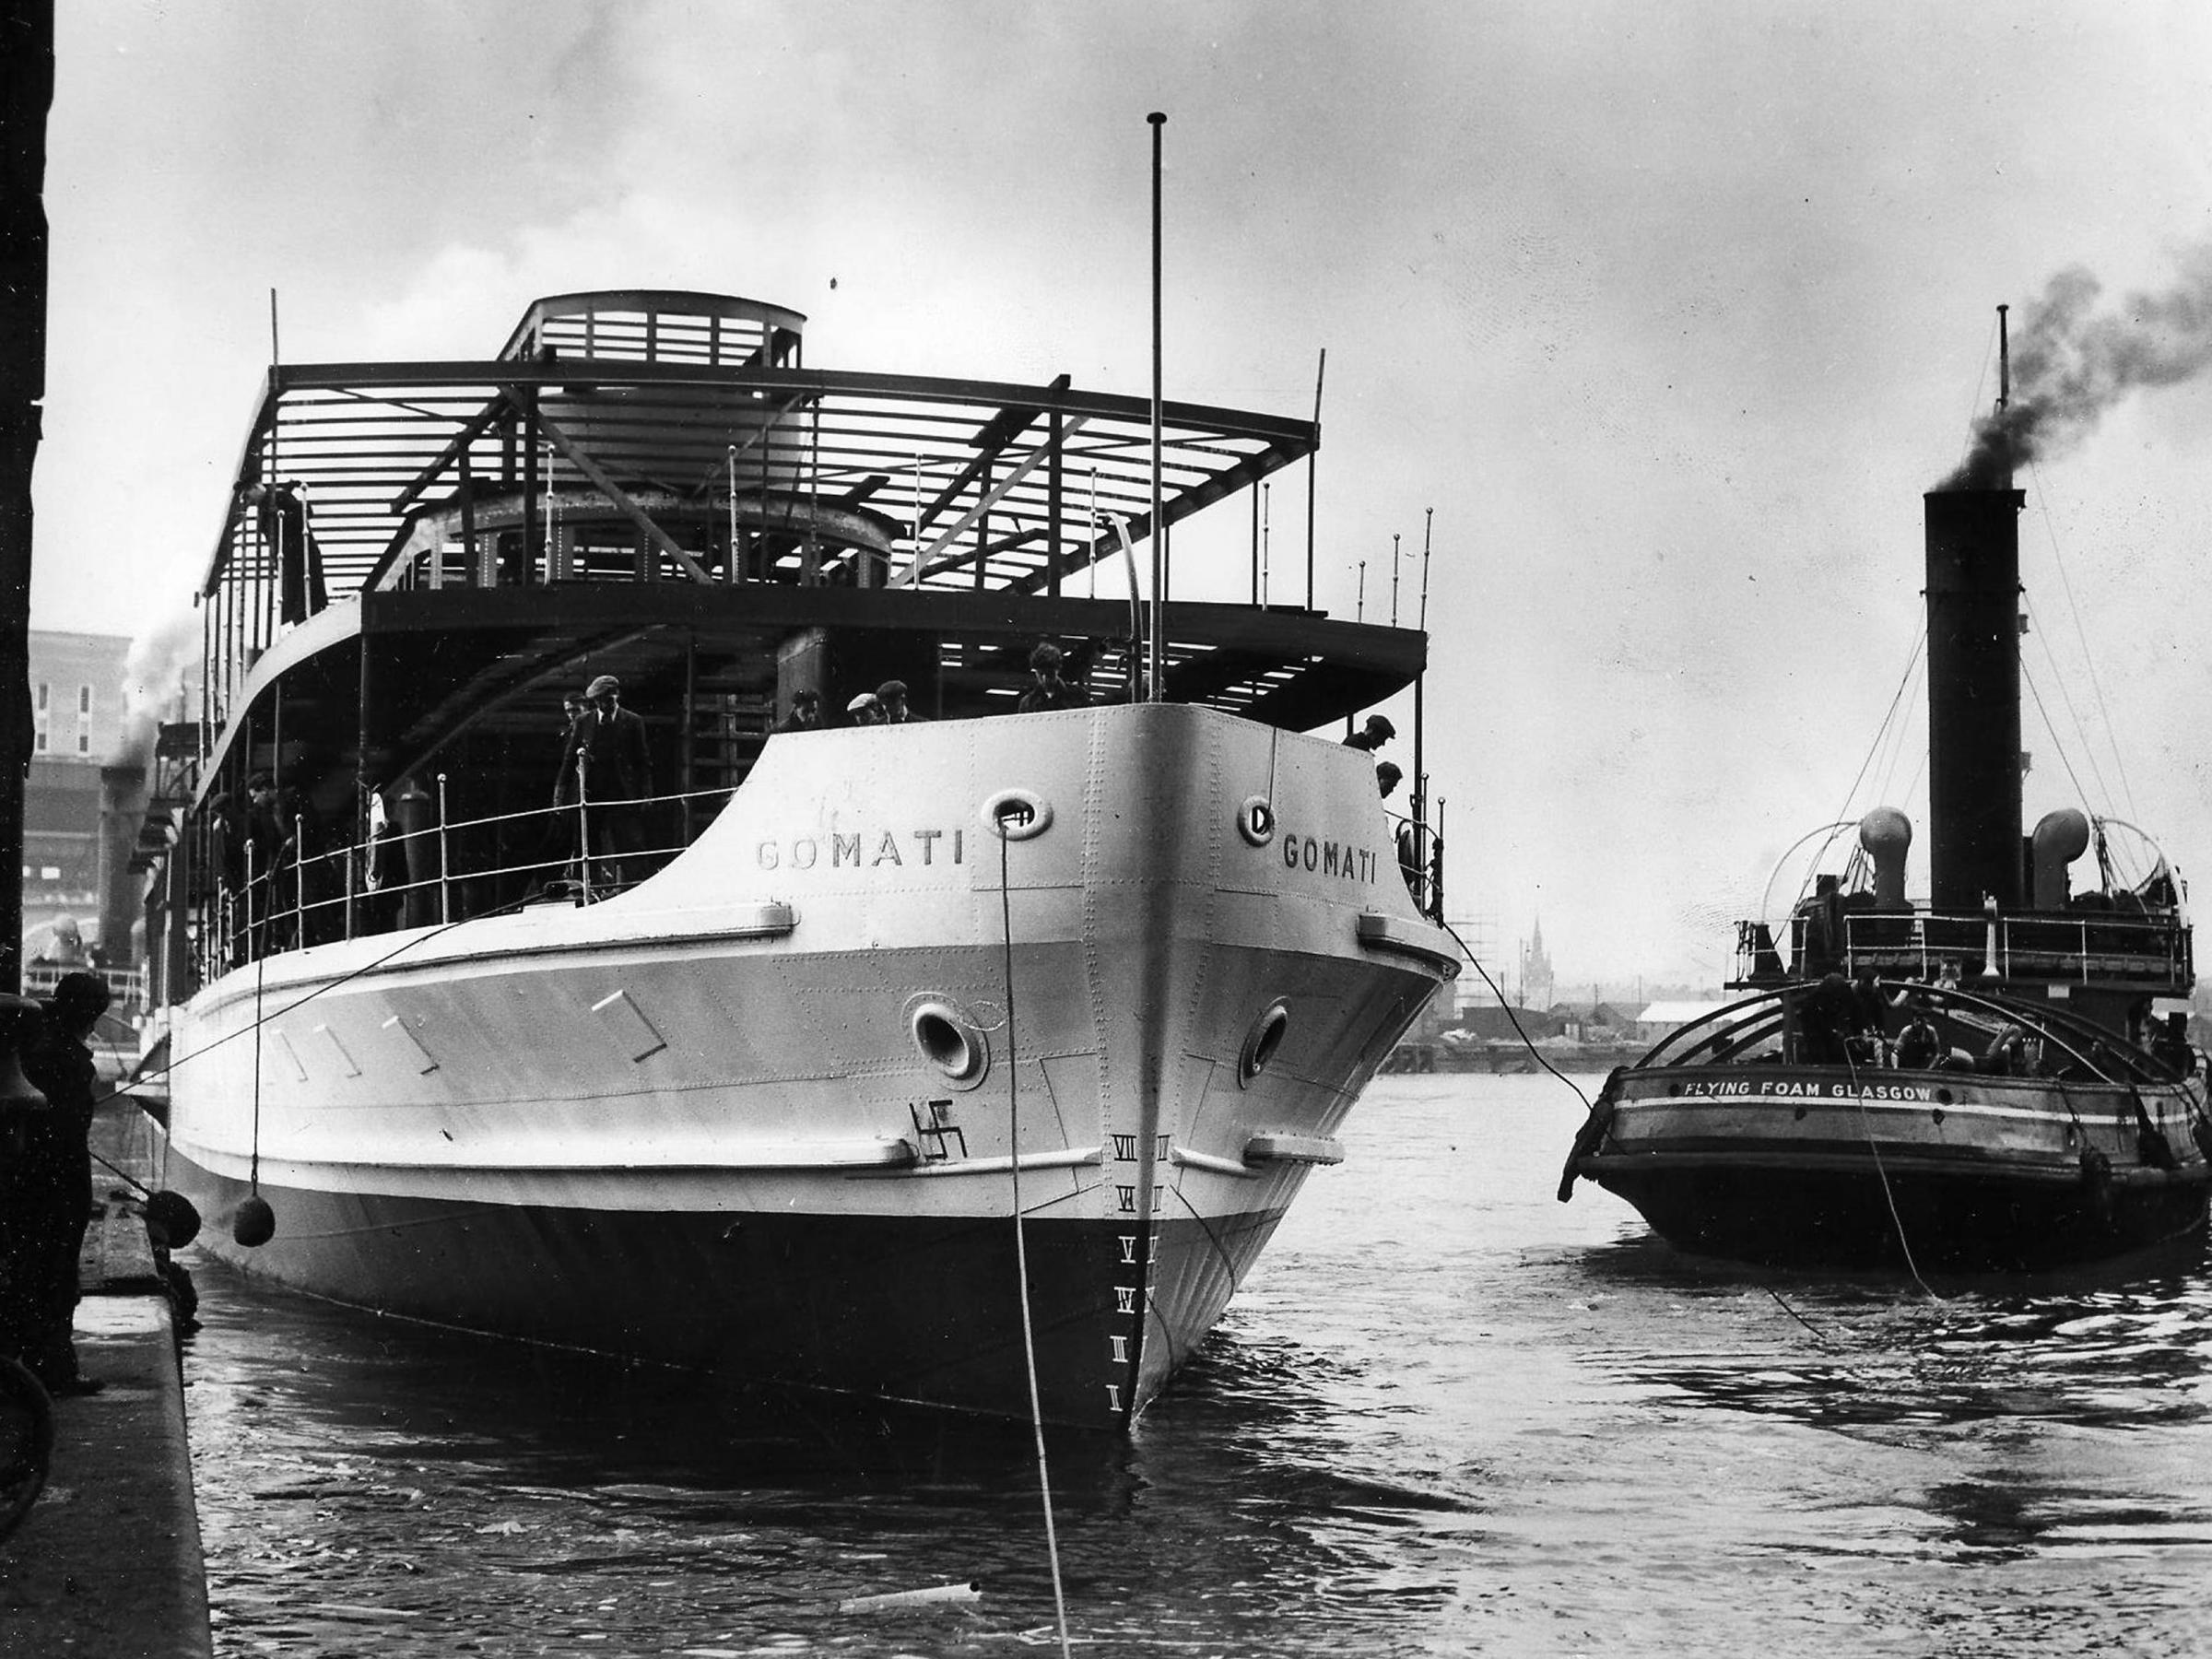 THOSE WERE THE DAYS1950: The paddle-steamer launched not with champagne but a coconut